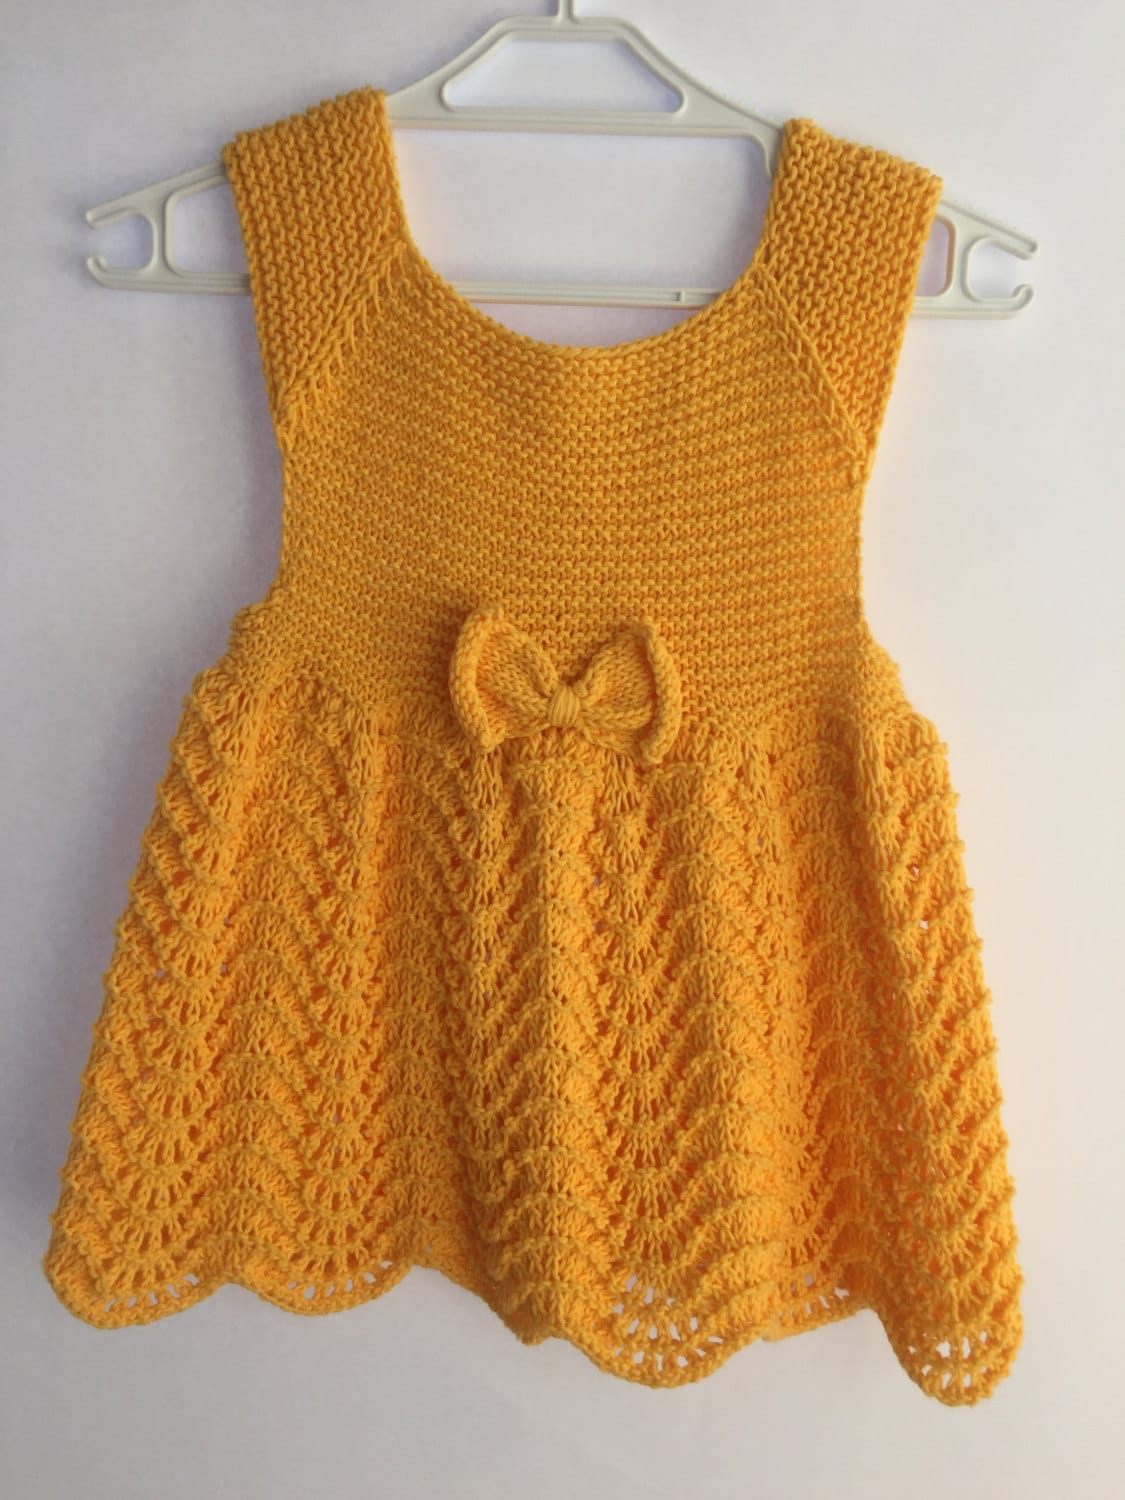 Knitting Baby Clothes : Knitted baby clothes shower gifts